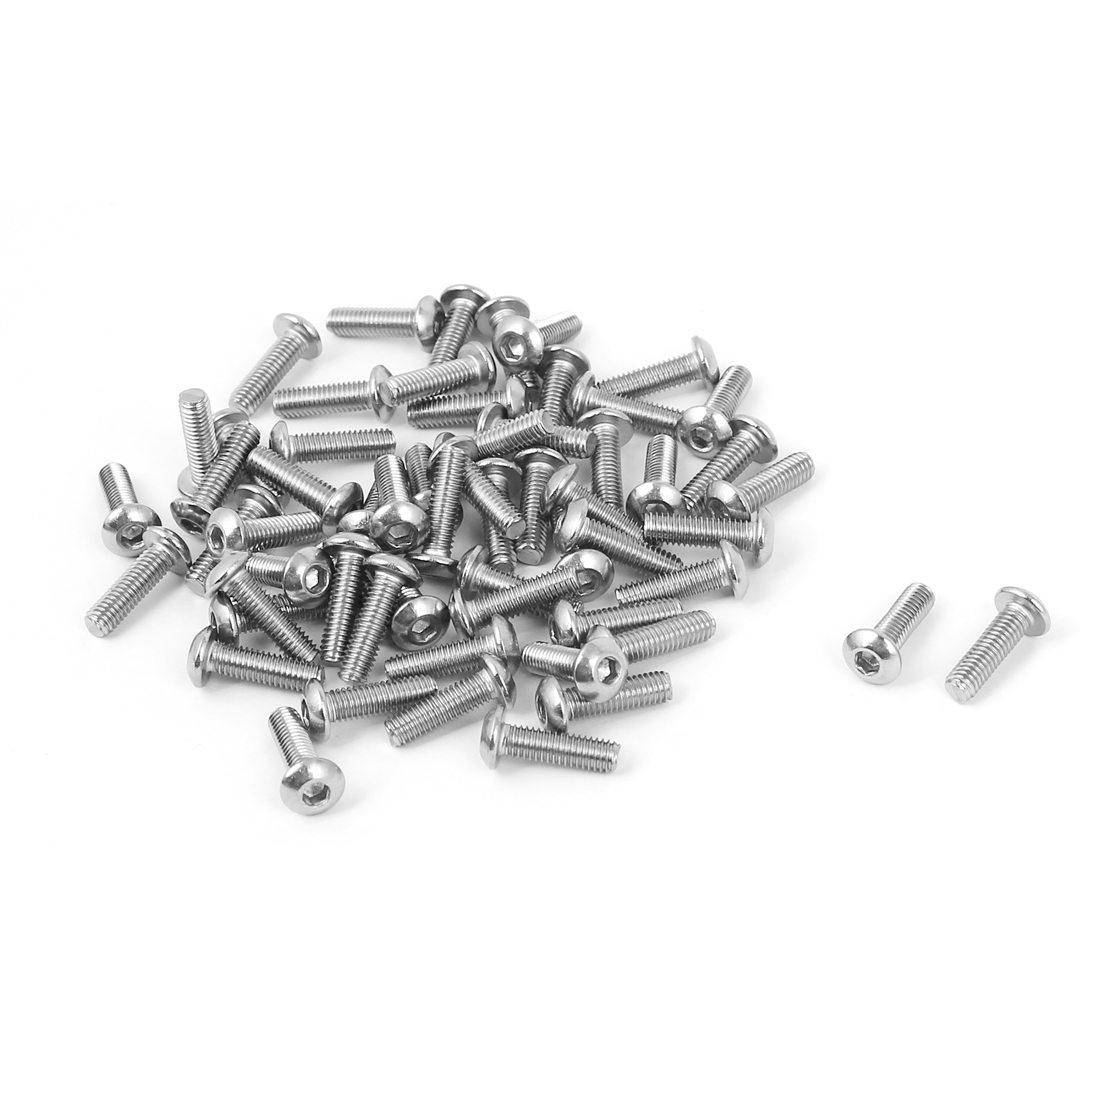 50 Pcs M3 x 10mm Silver Tone Stainless Steel Button Head Socket Cap Screw